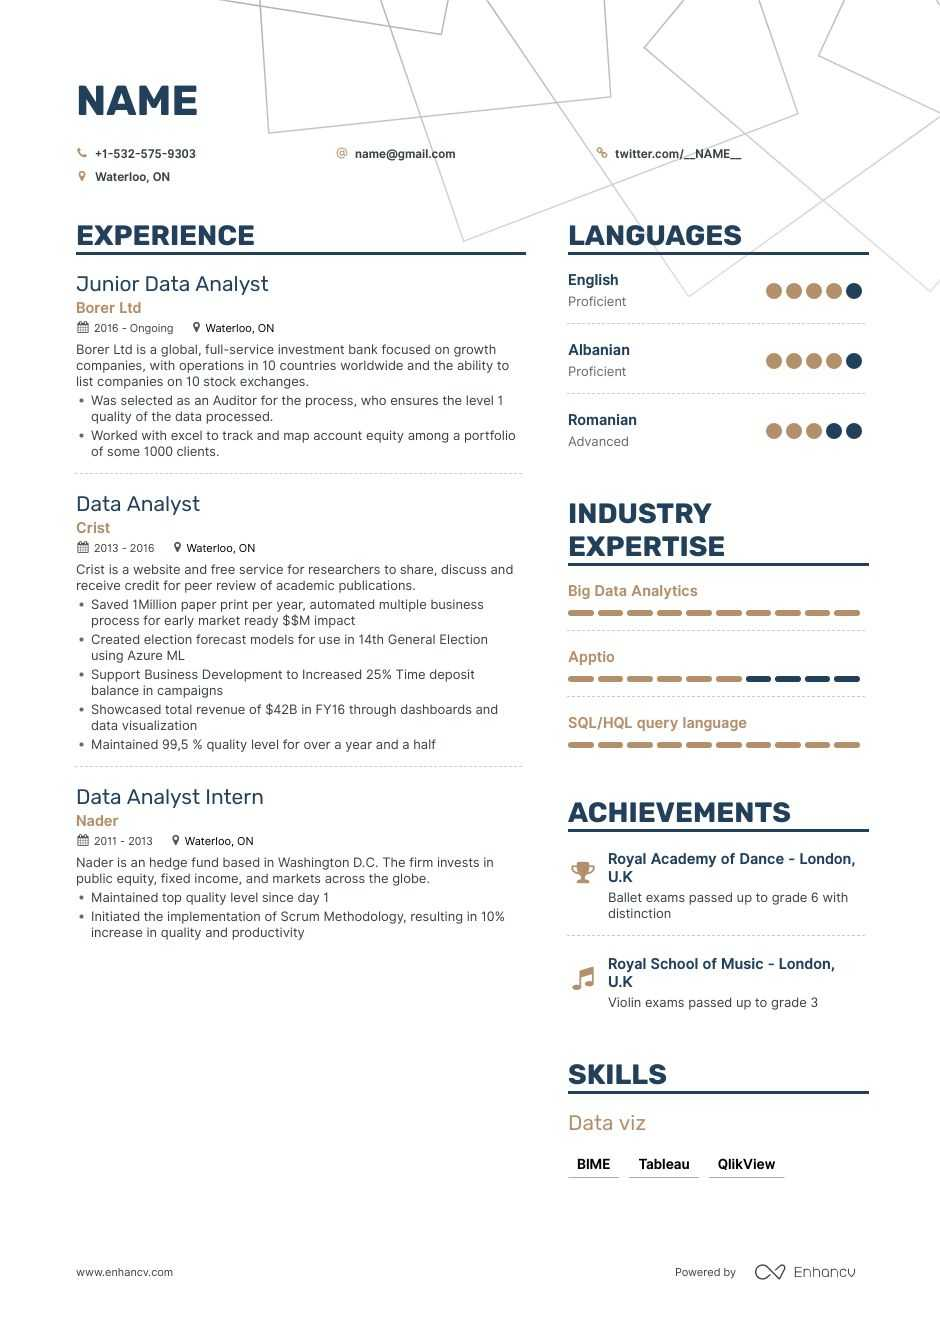 security analyst resume examples political candidate sample banking for freshers Resume Political Candidate Resume Sample India